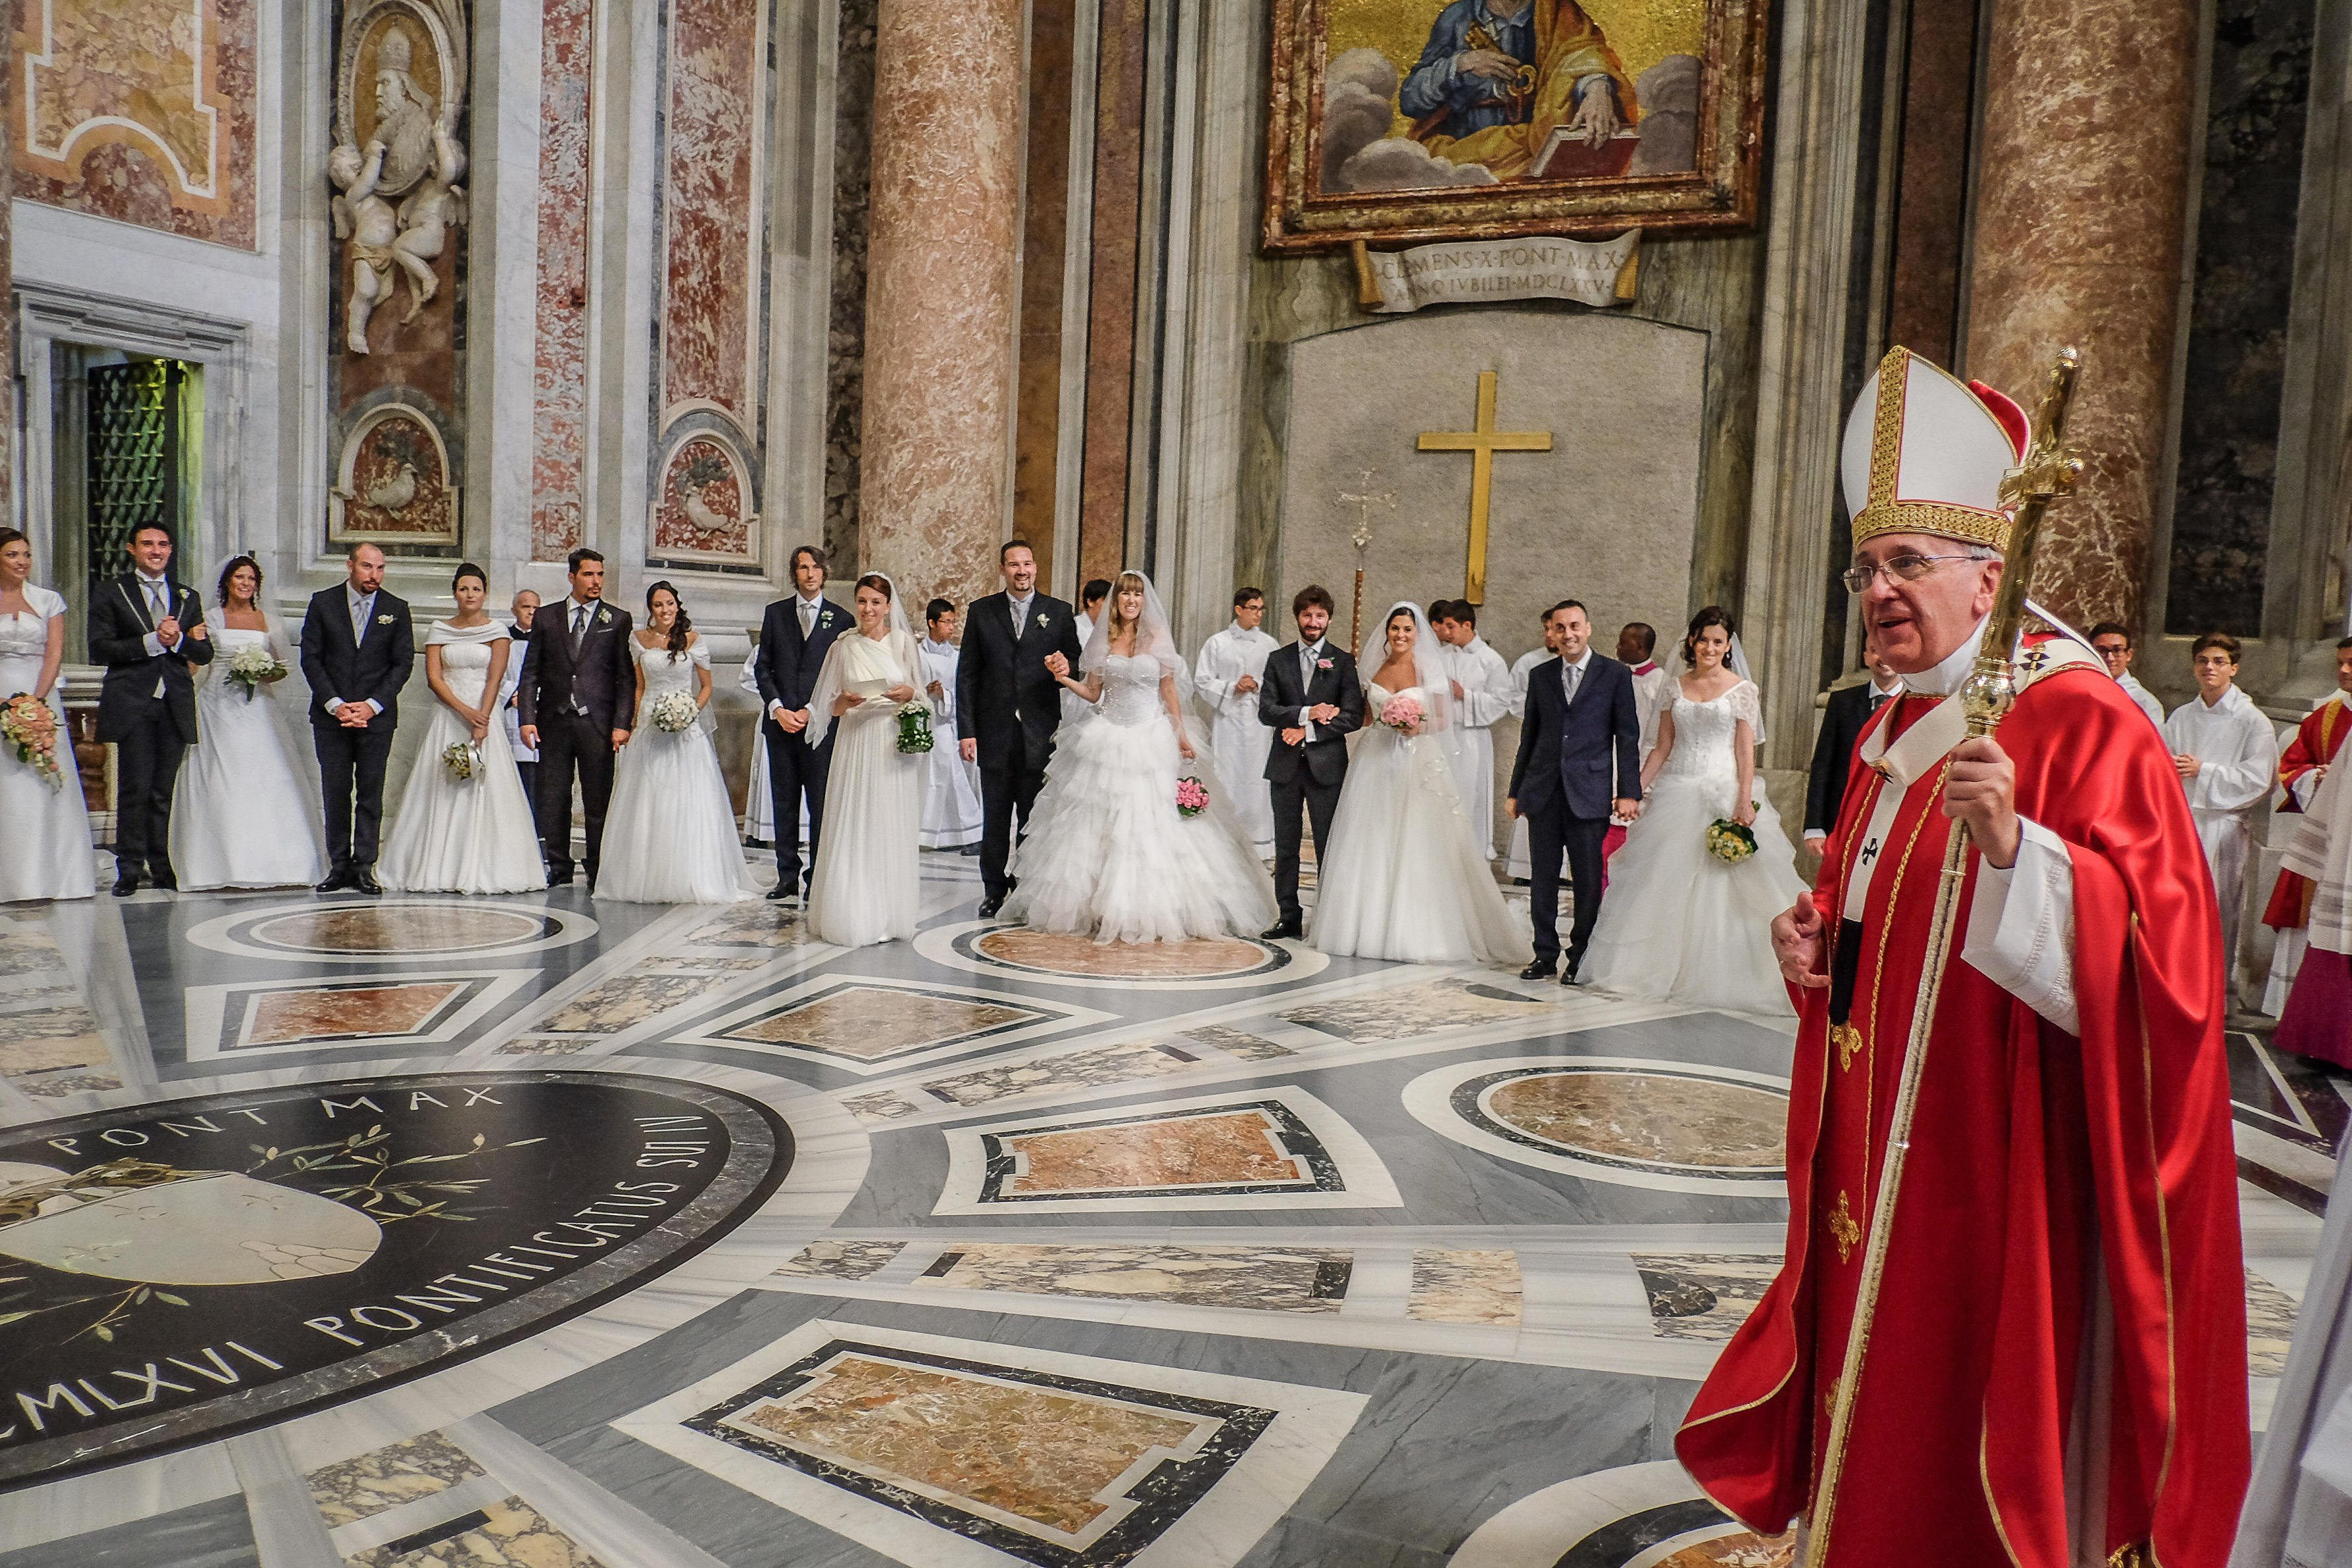 Pope Francis celebrates the wedding of 20 couples in St. Peter's Basilica in Vatican City on Sept. 14, 2014.